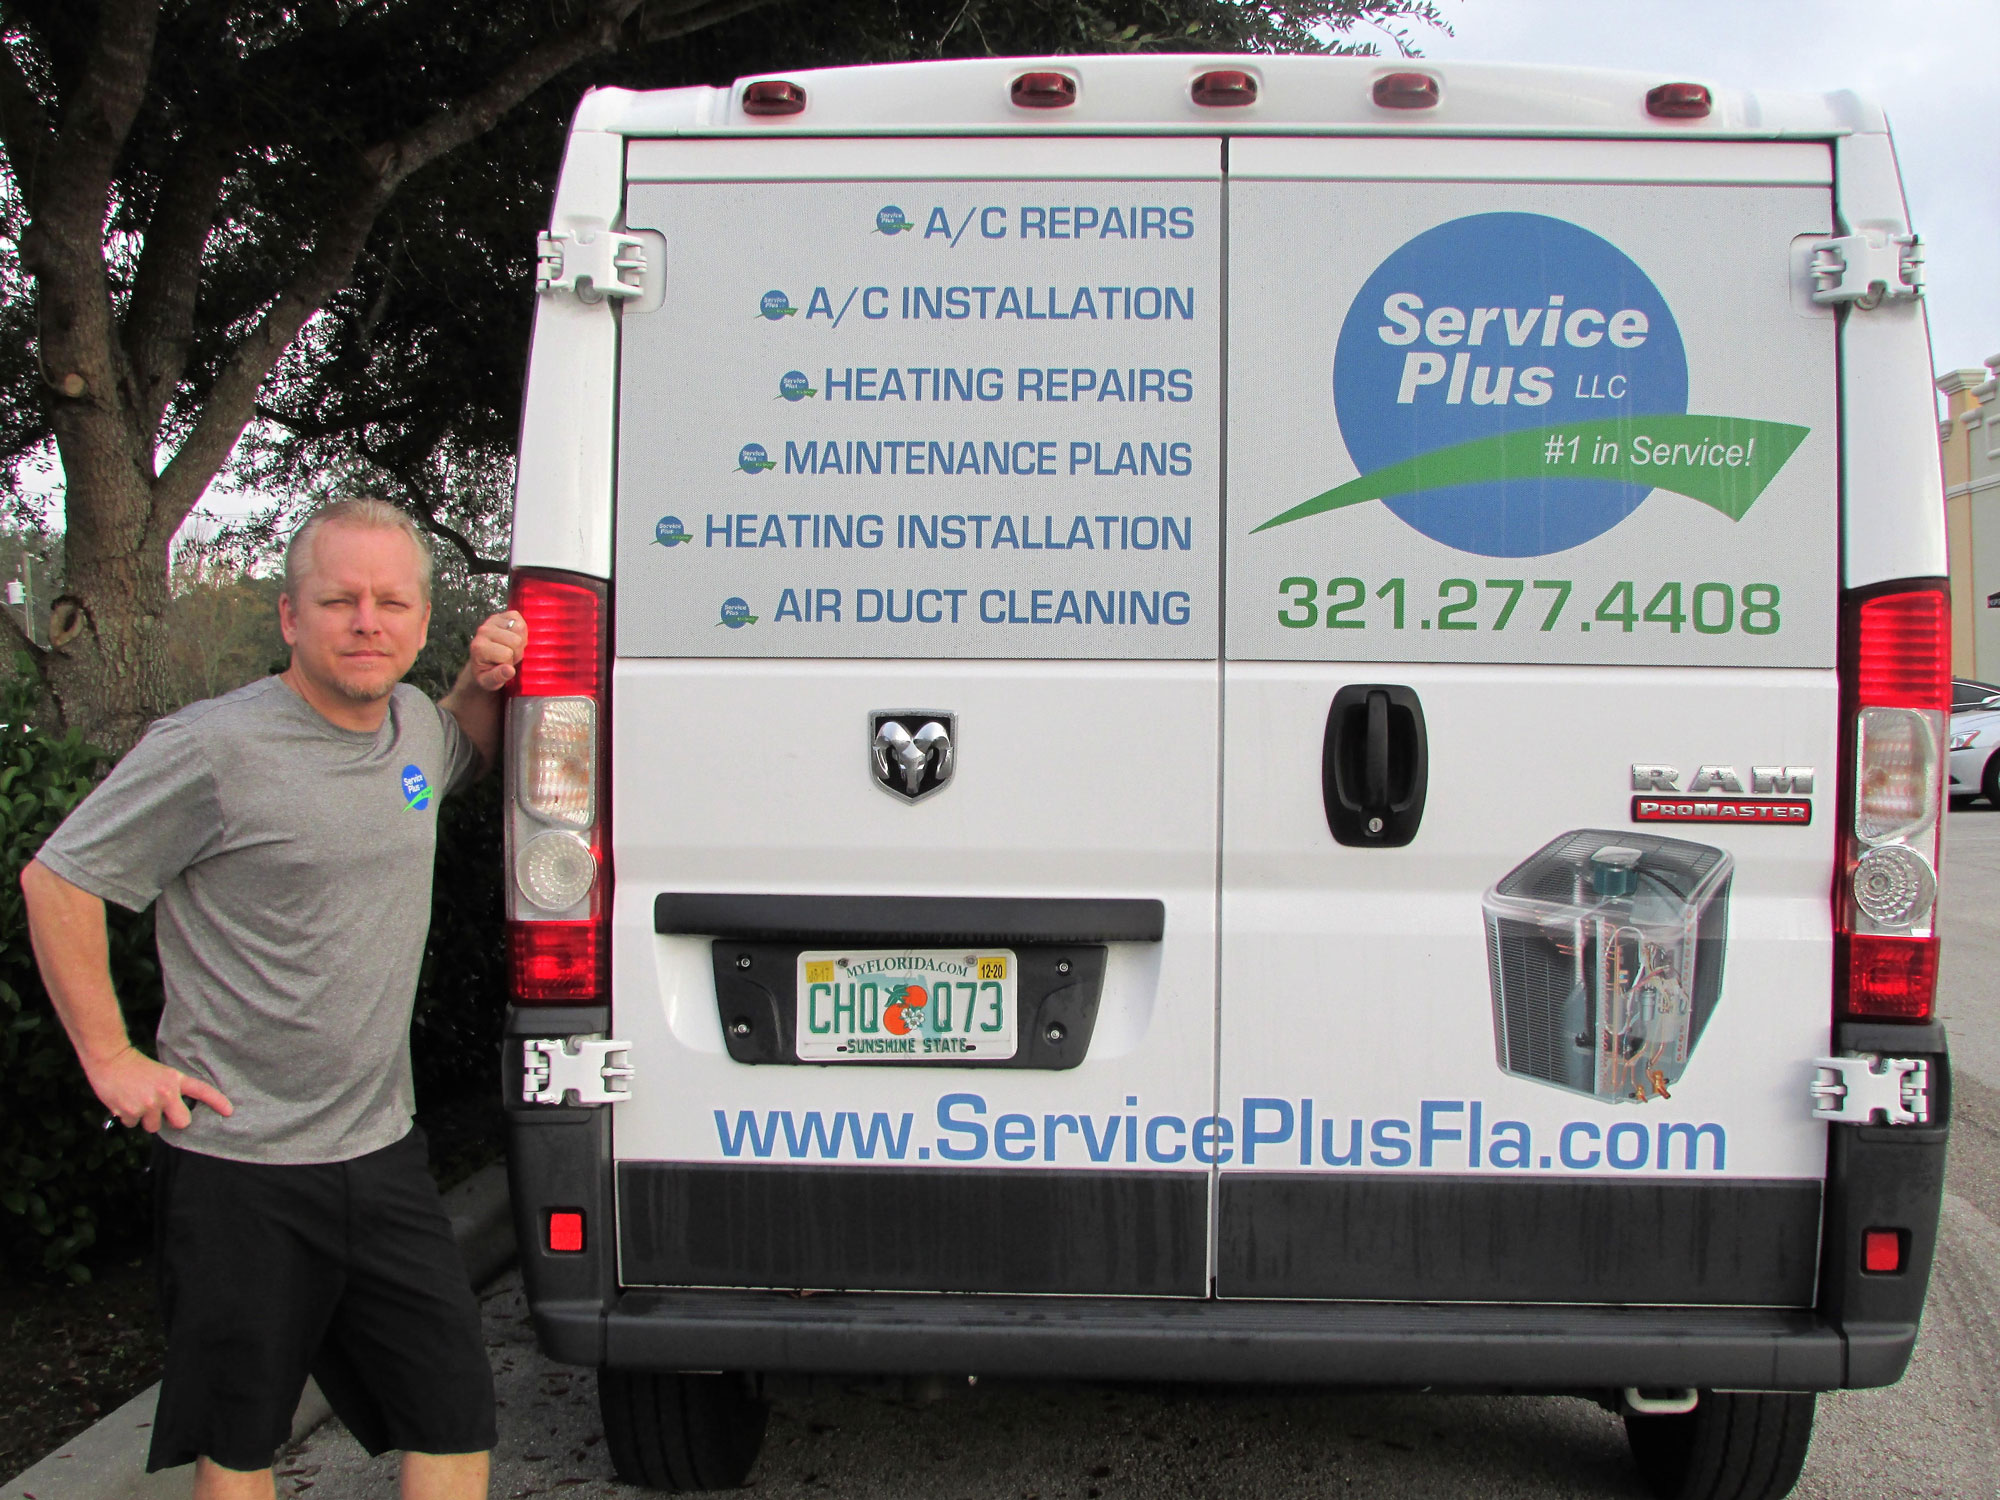 James Clayton, Owner, with Service Plus Van